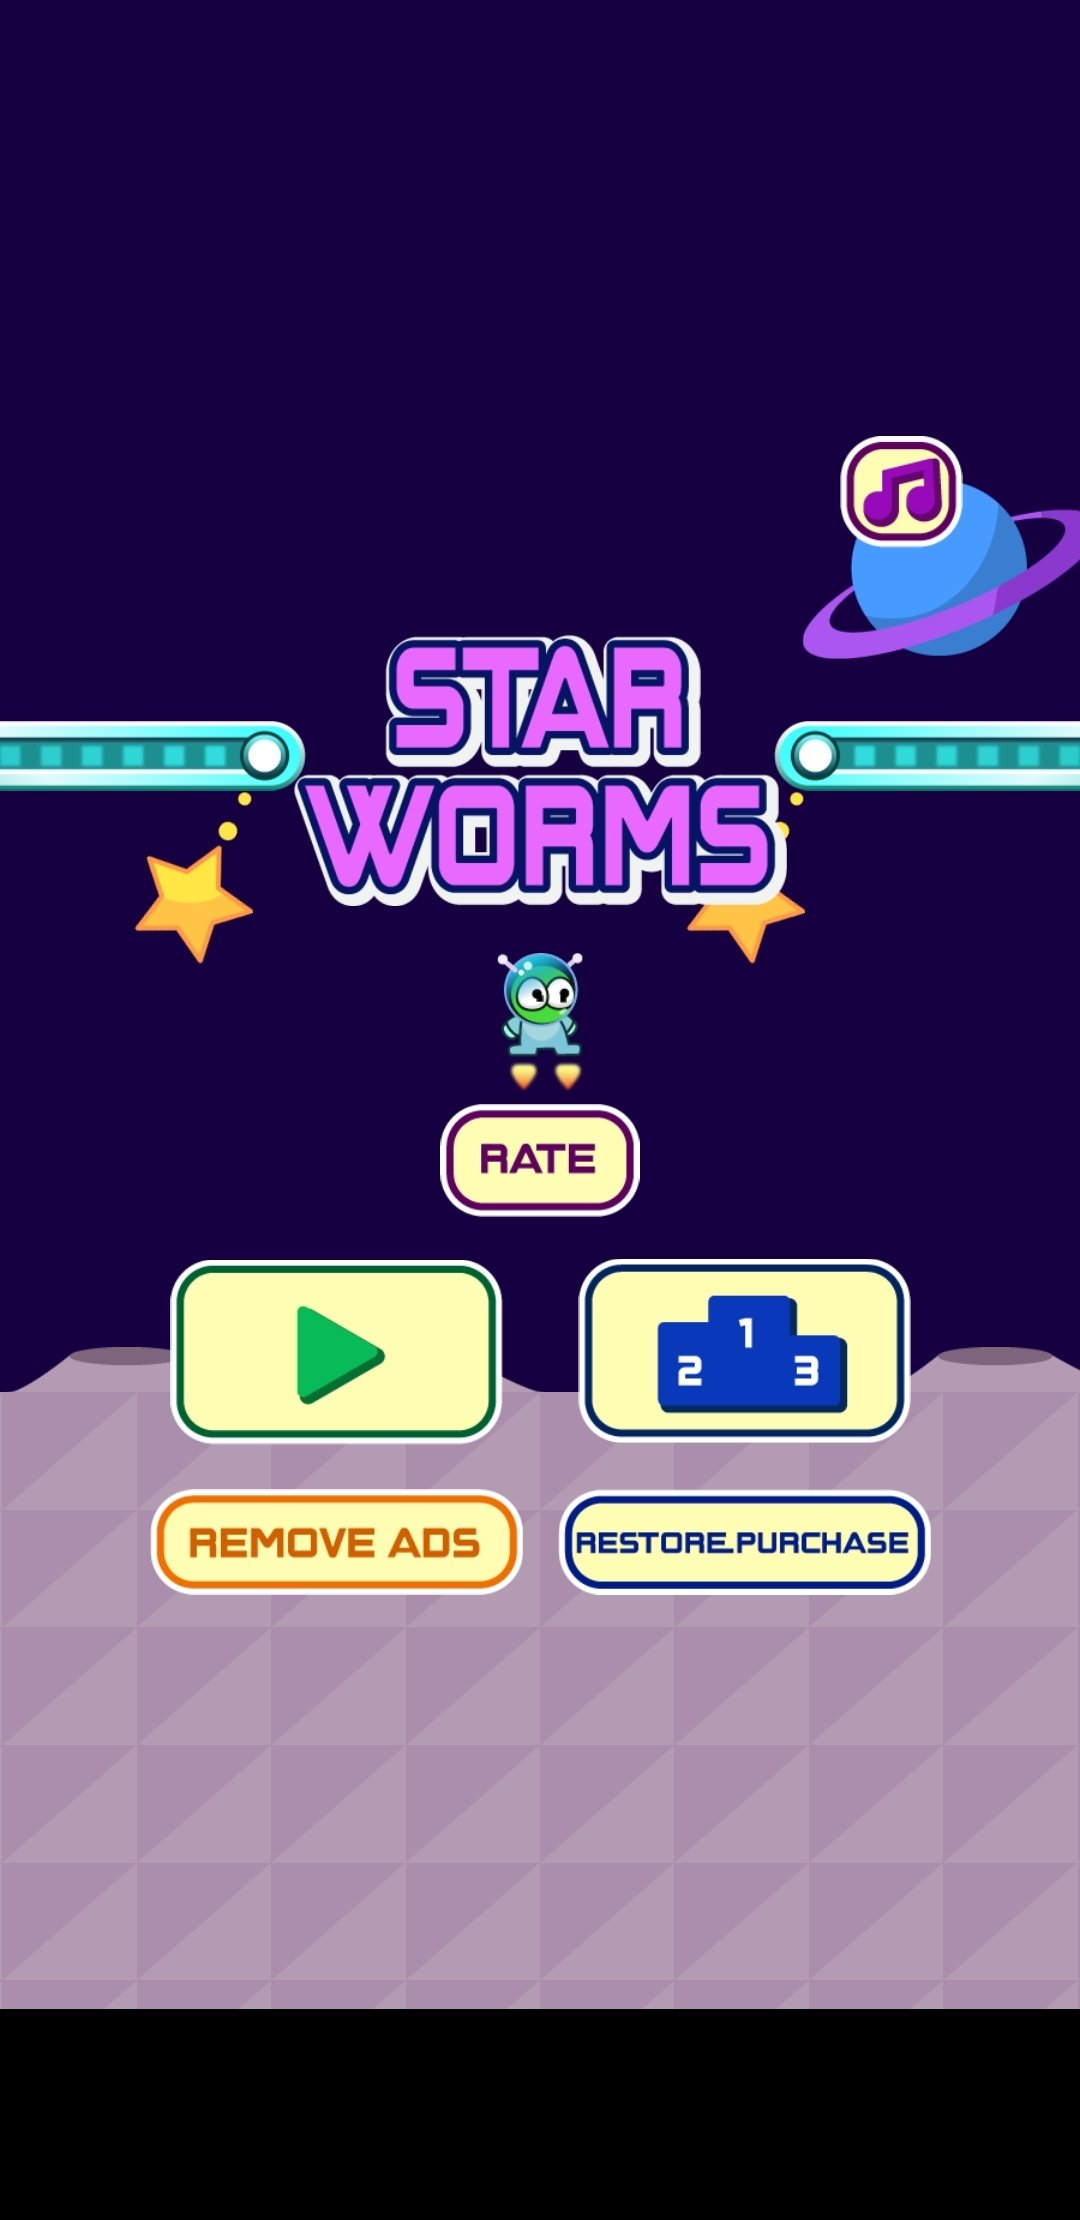 Star Worms Android image 3